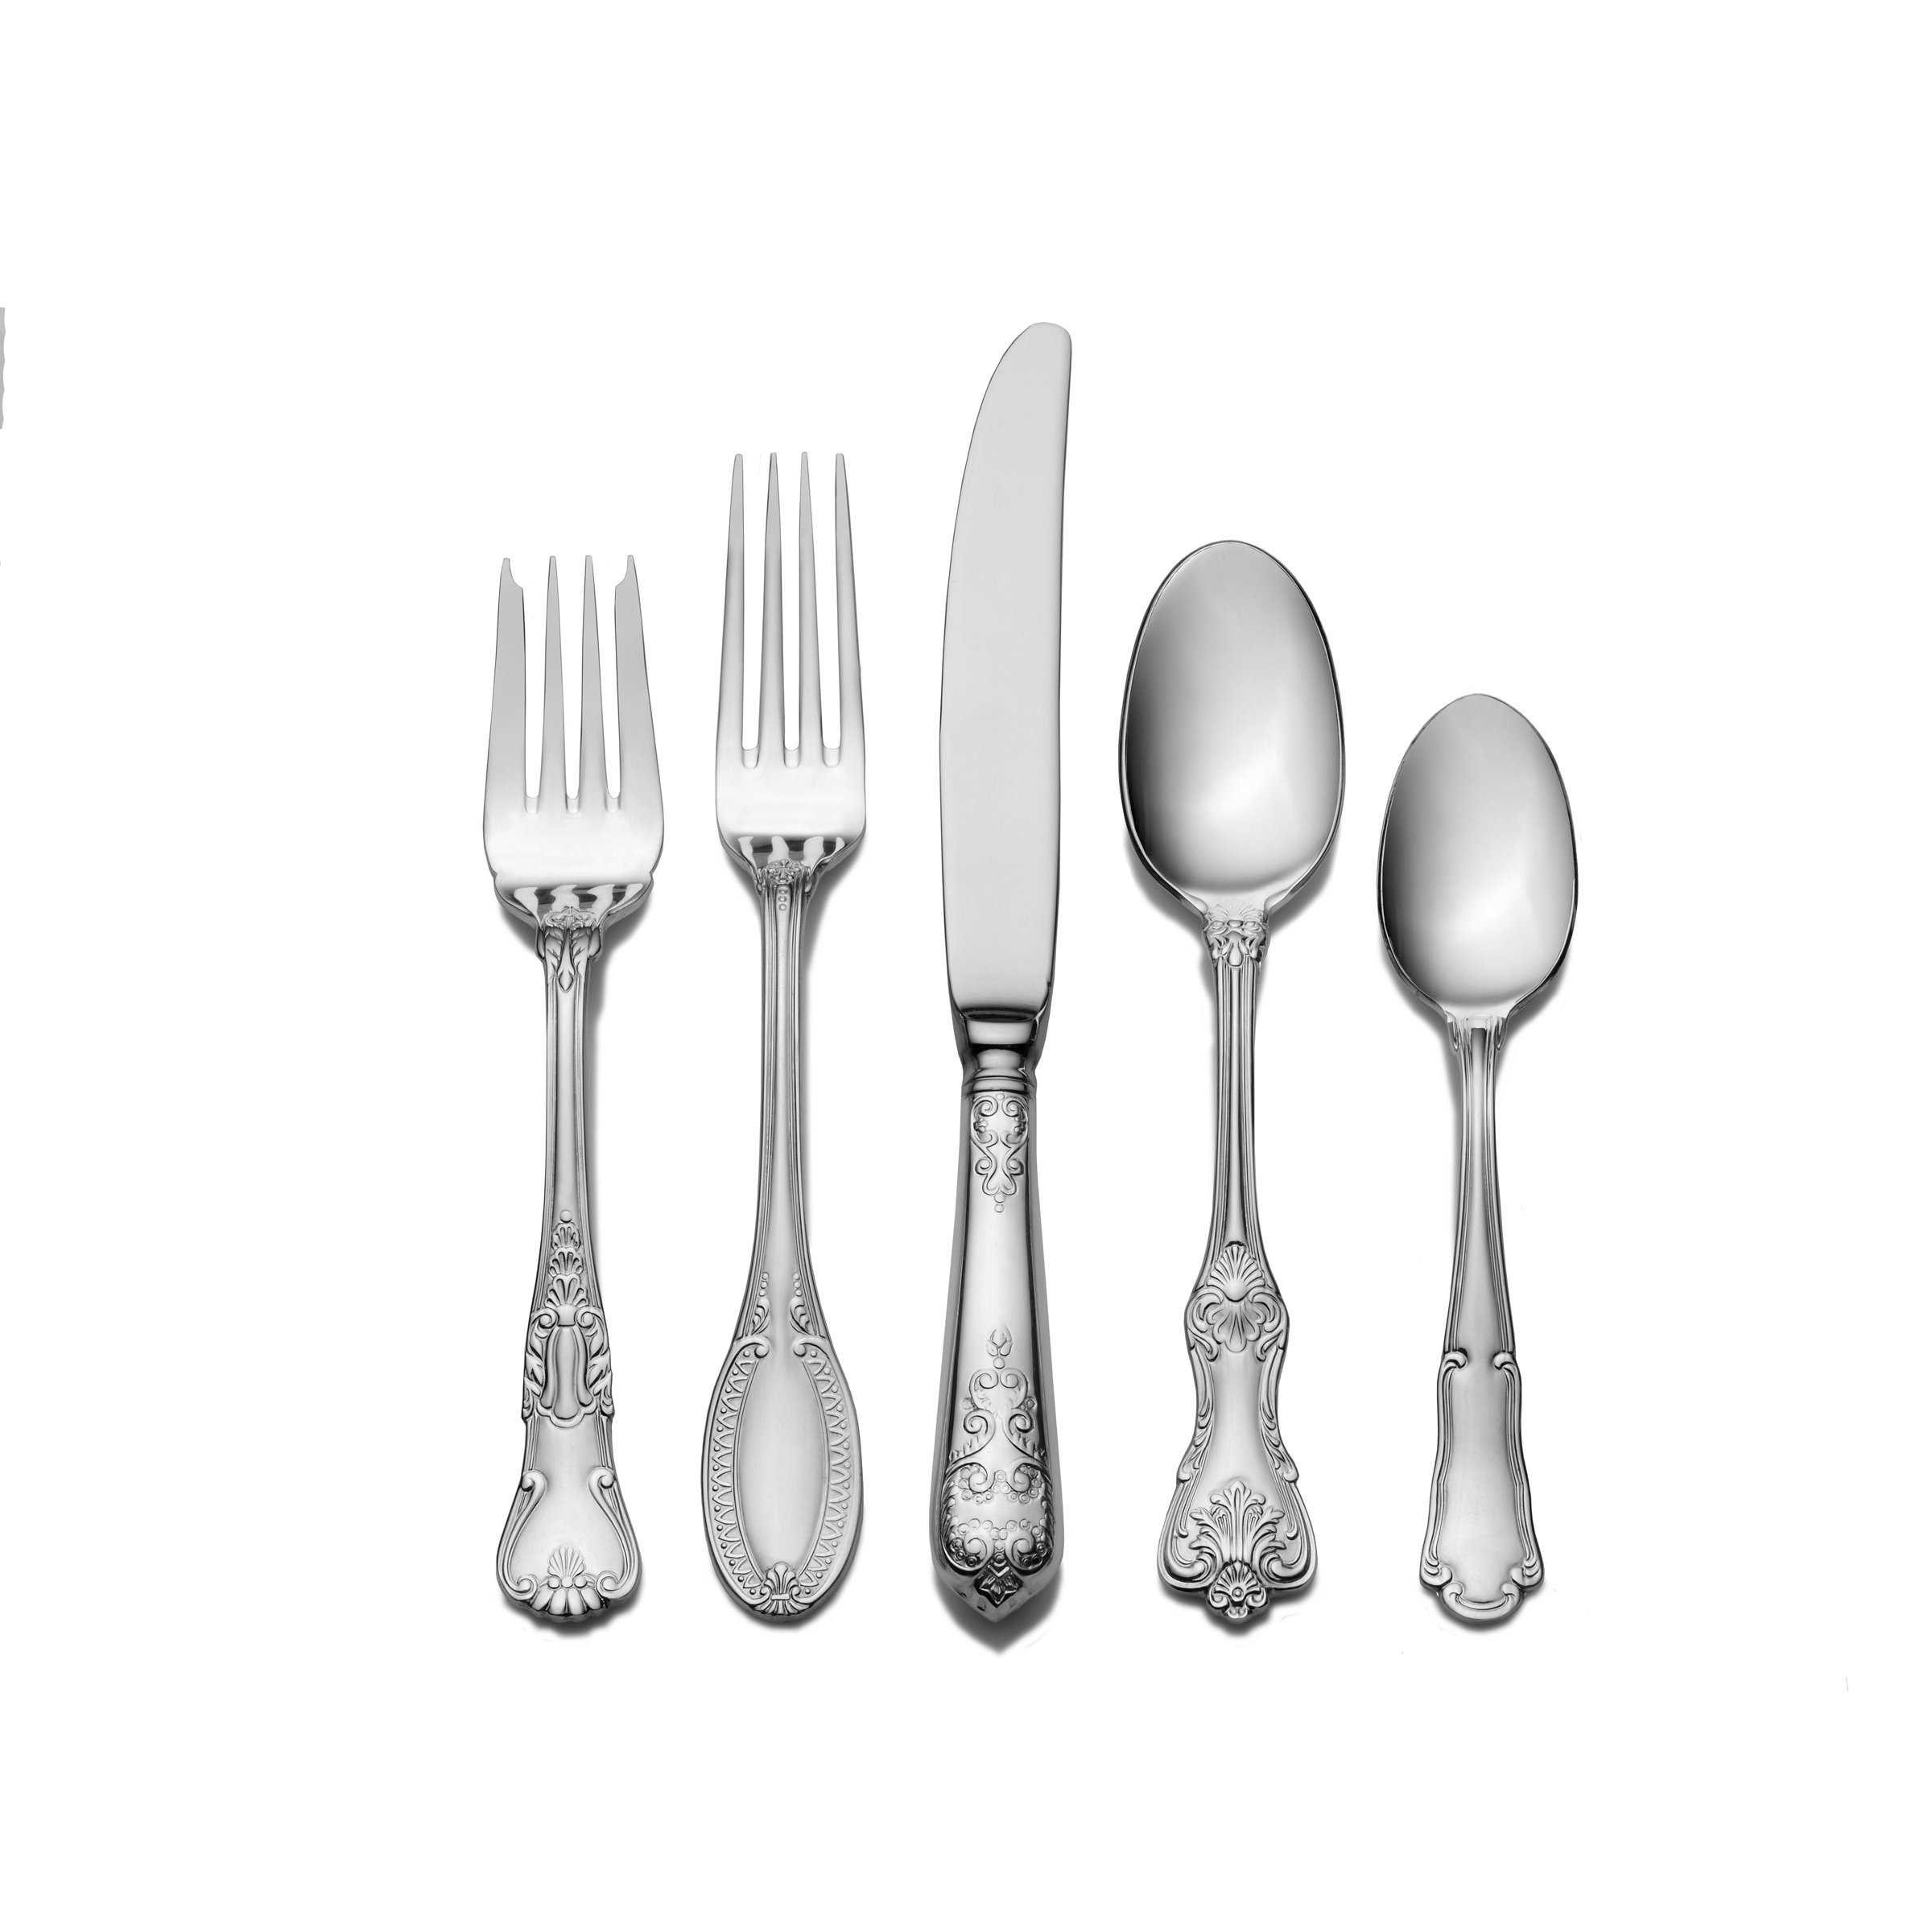 wallace hotel 20 piece stainless steel flatware set service for 4. Black Bedroom Furniture Sets. Home Design Ideas